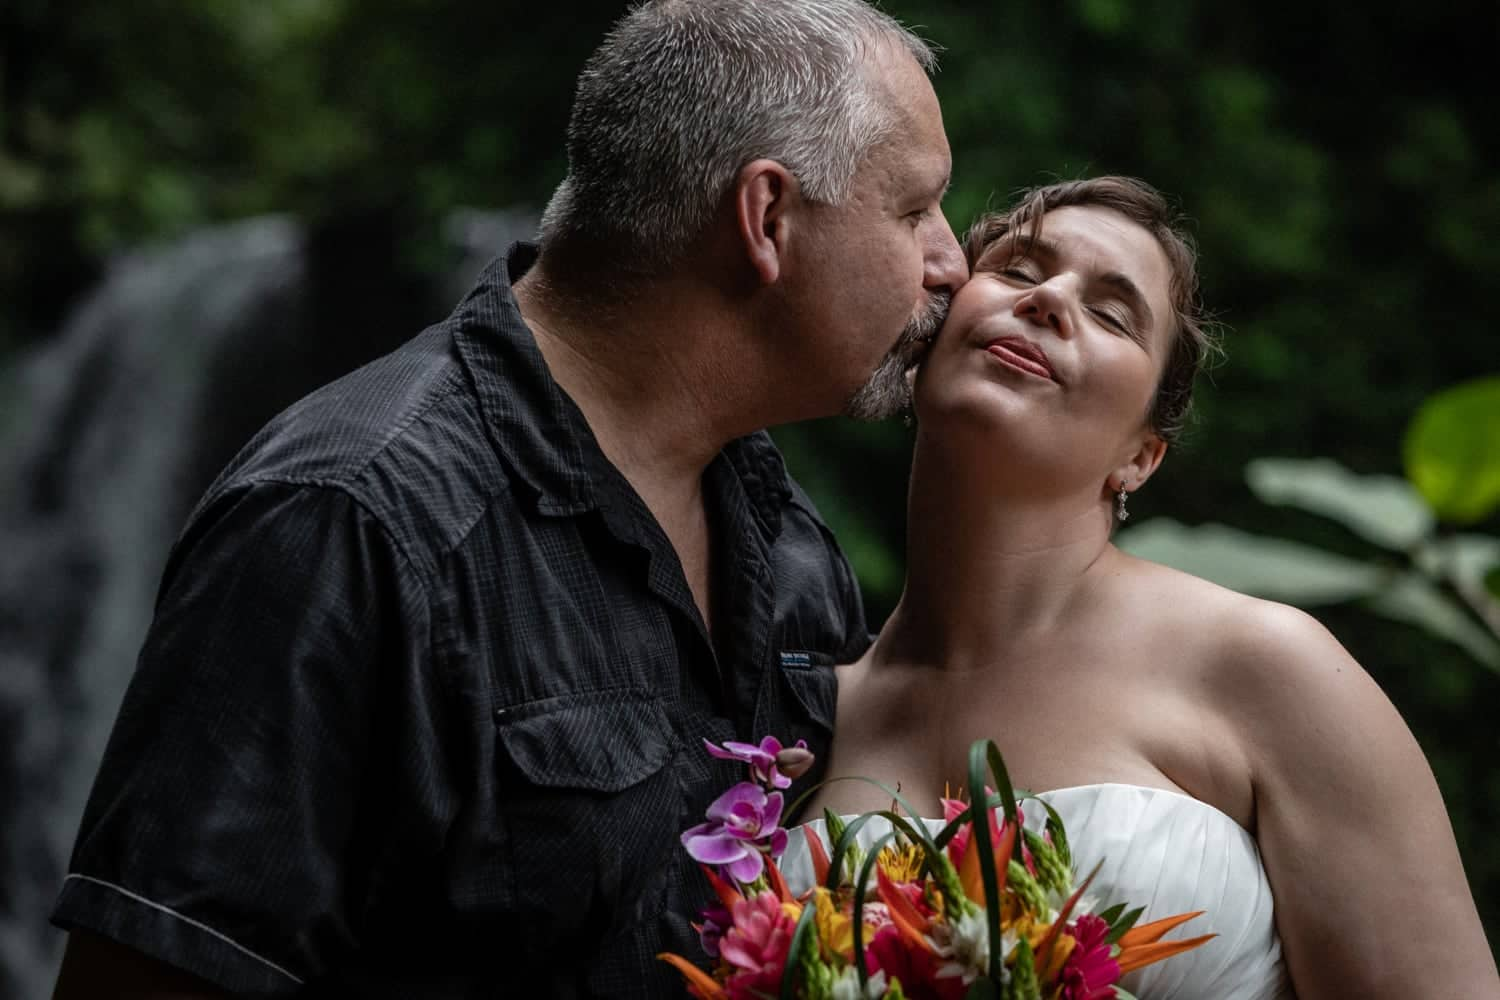 Groom kisses bride's cheek near waterfall after getting hitched in La Fortuna.